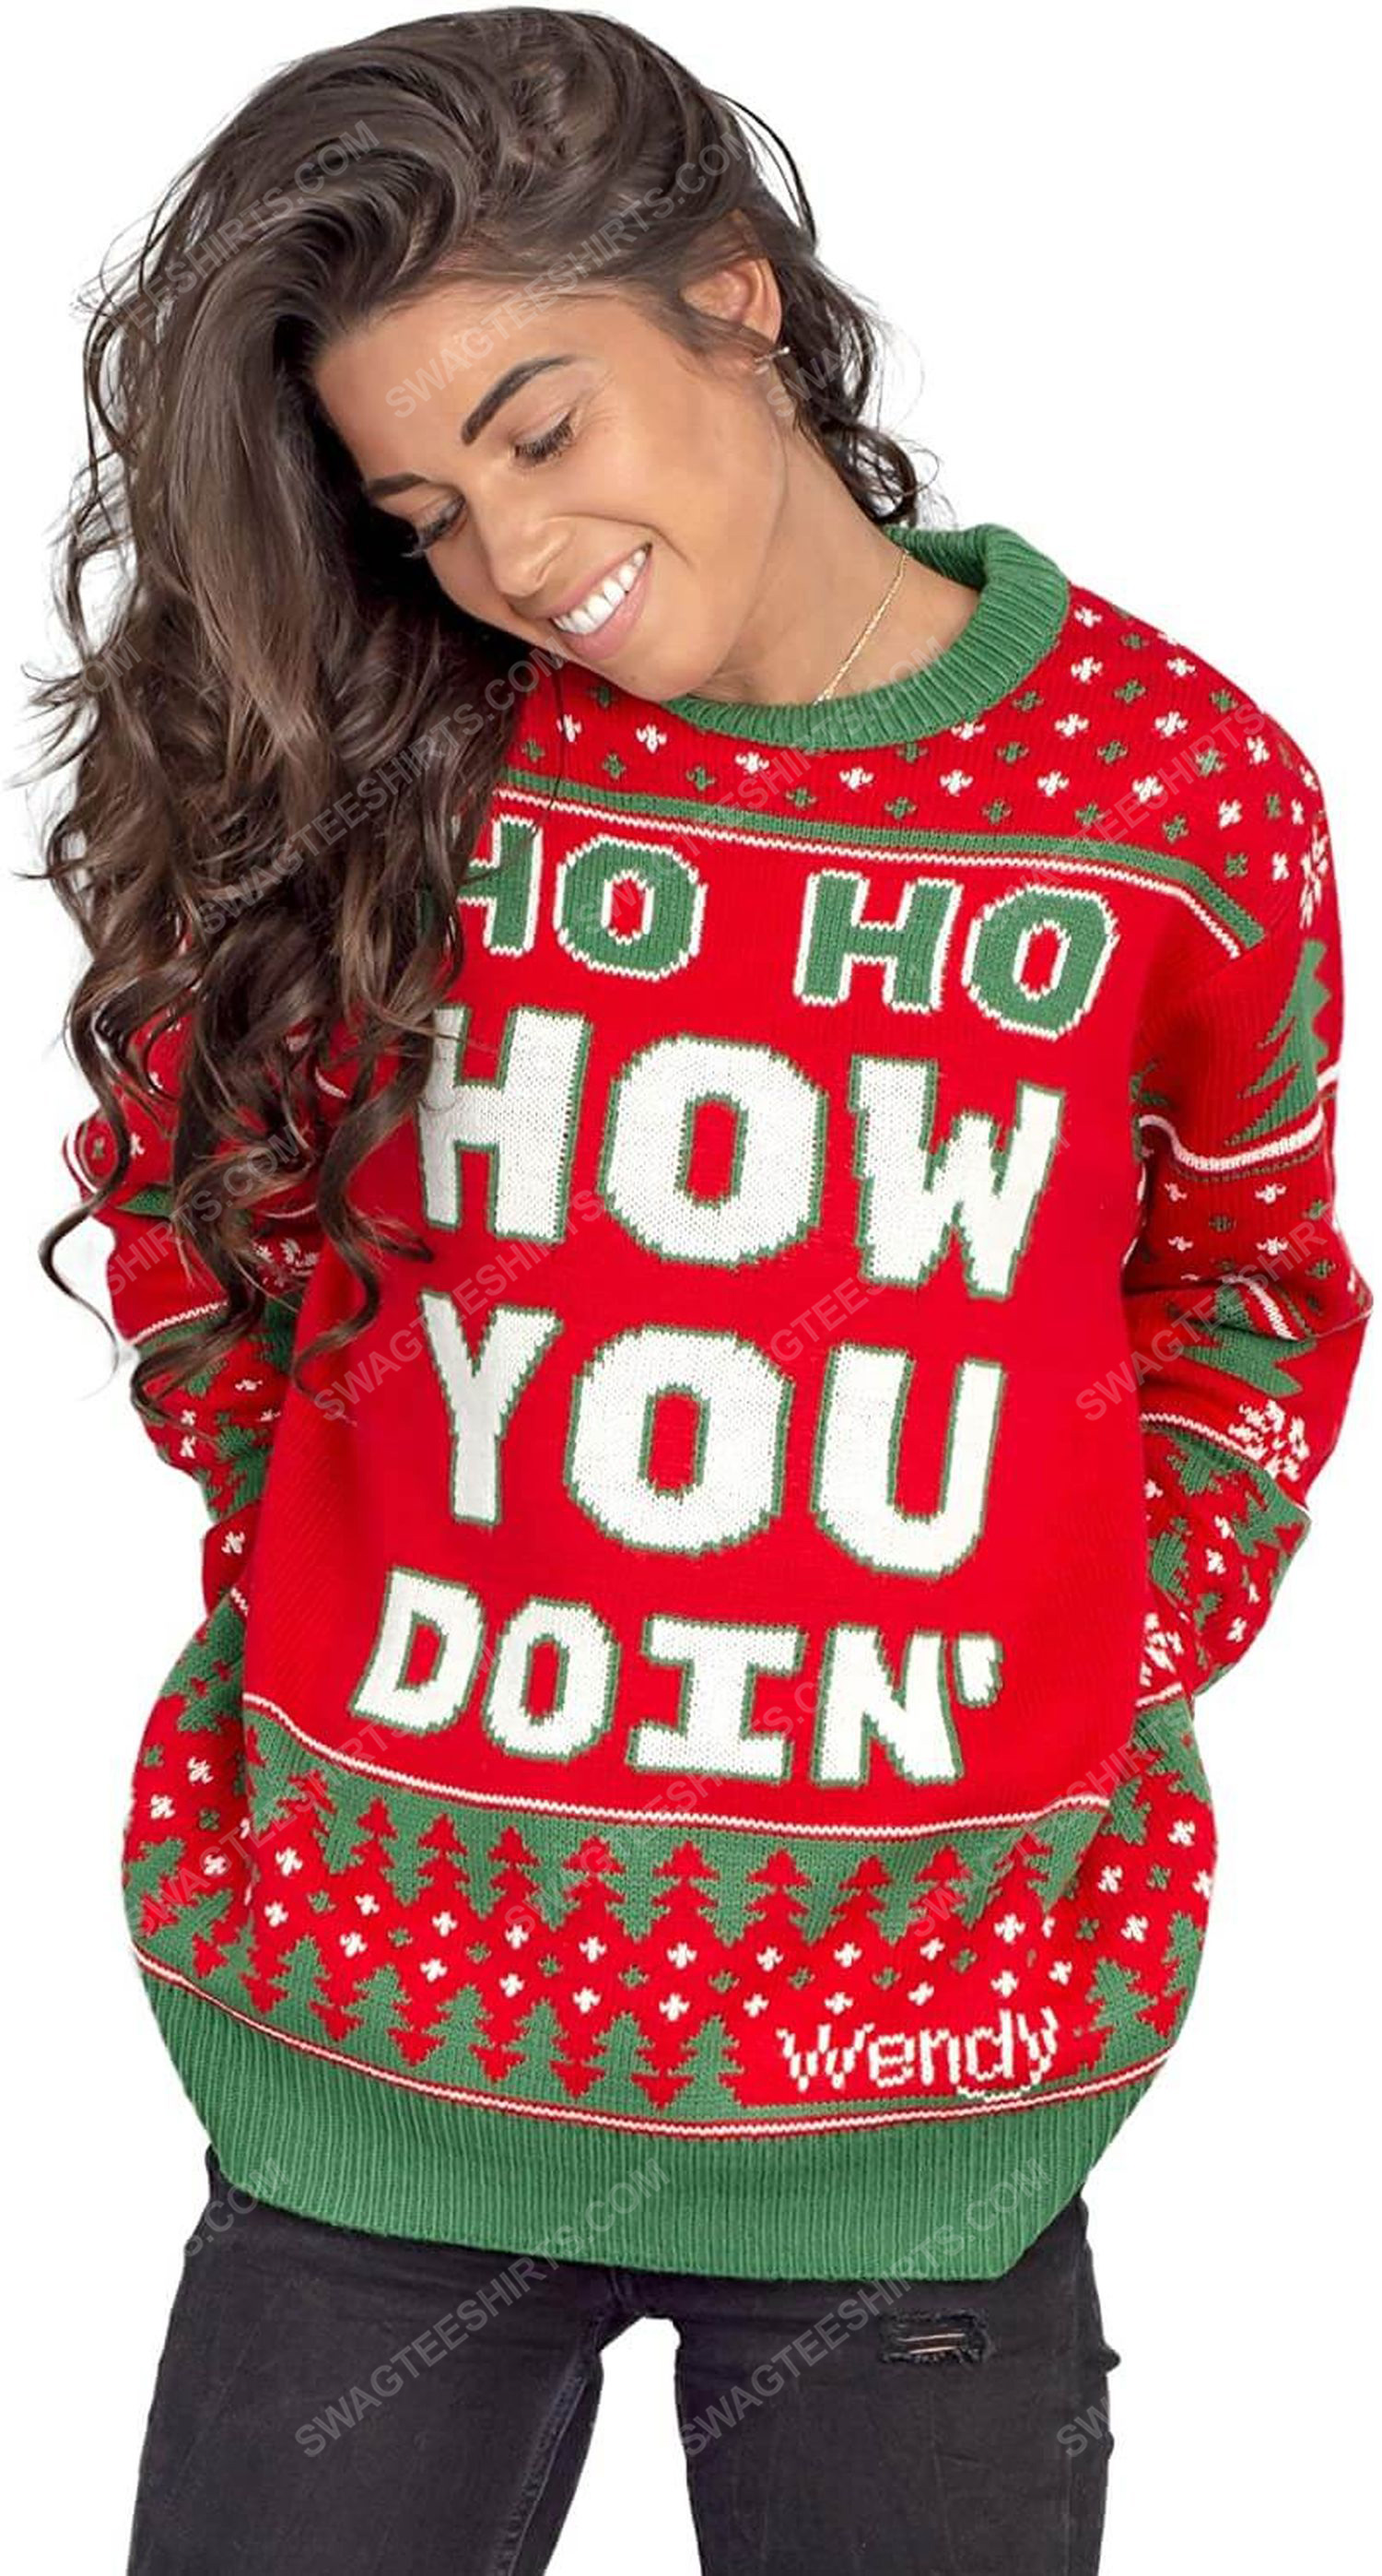 Wendy williams red ho ho how you doin' full print ugly christmas sweater 3